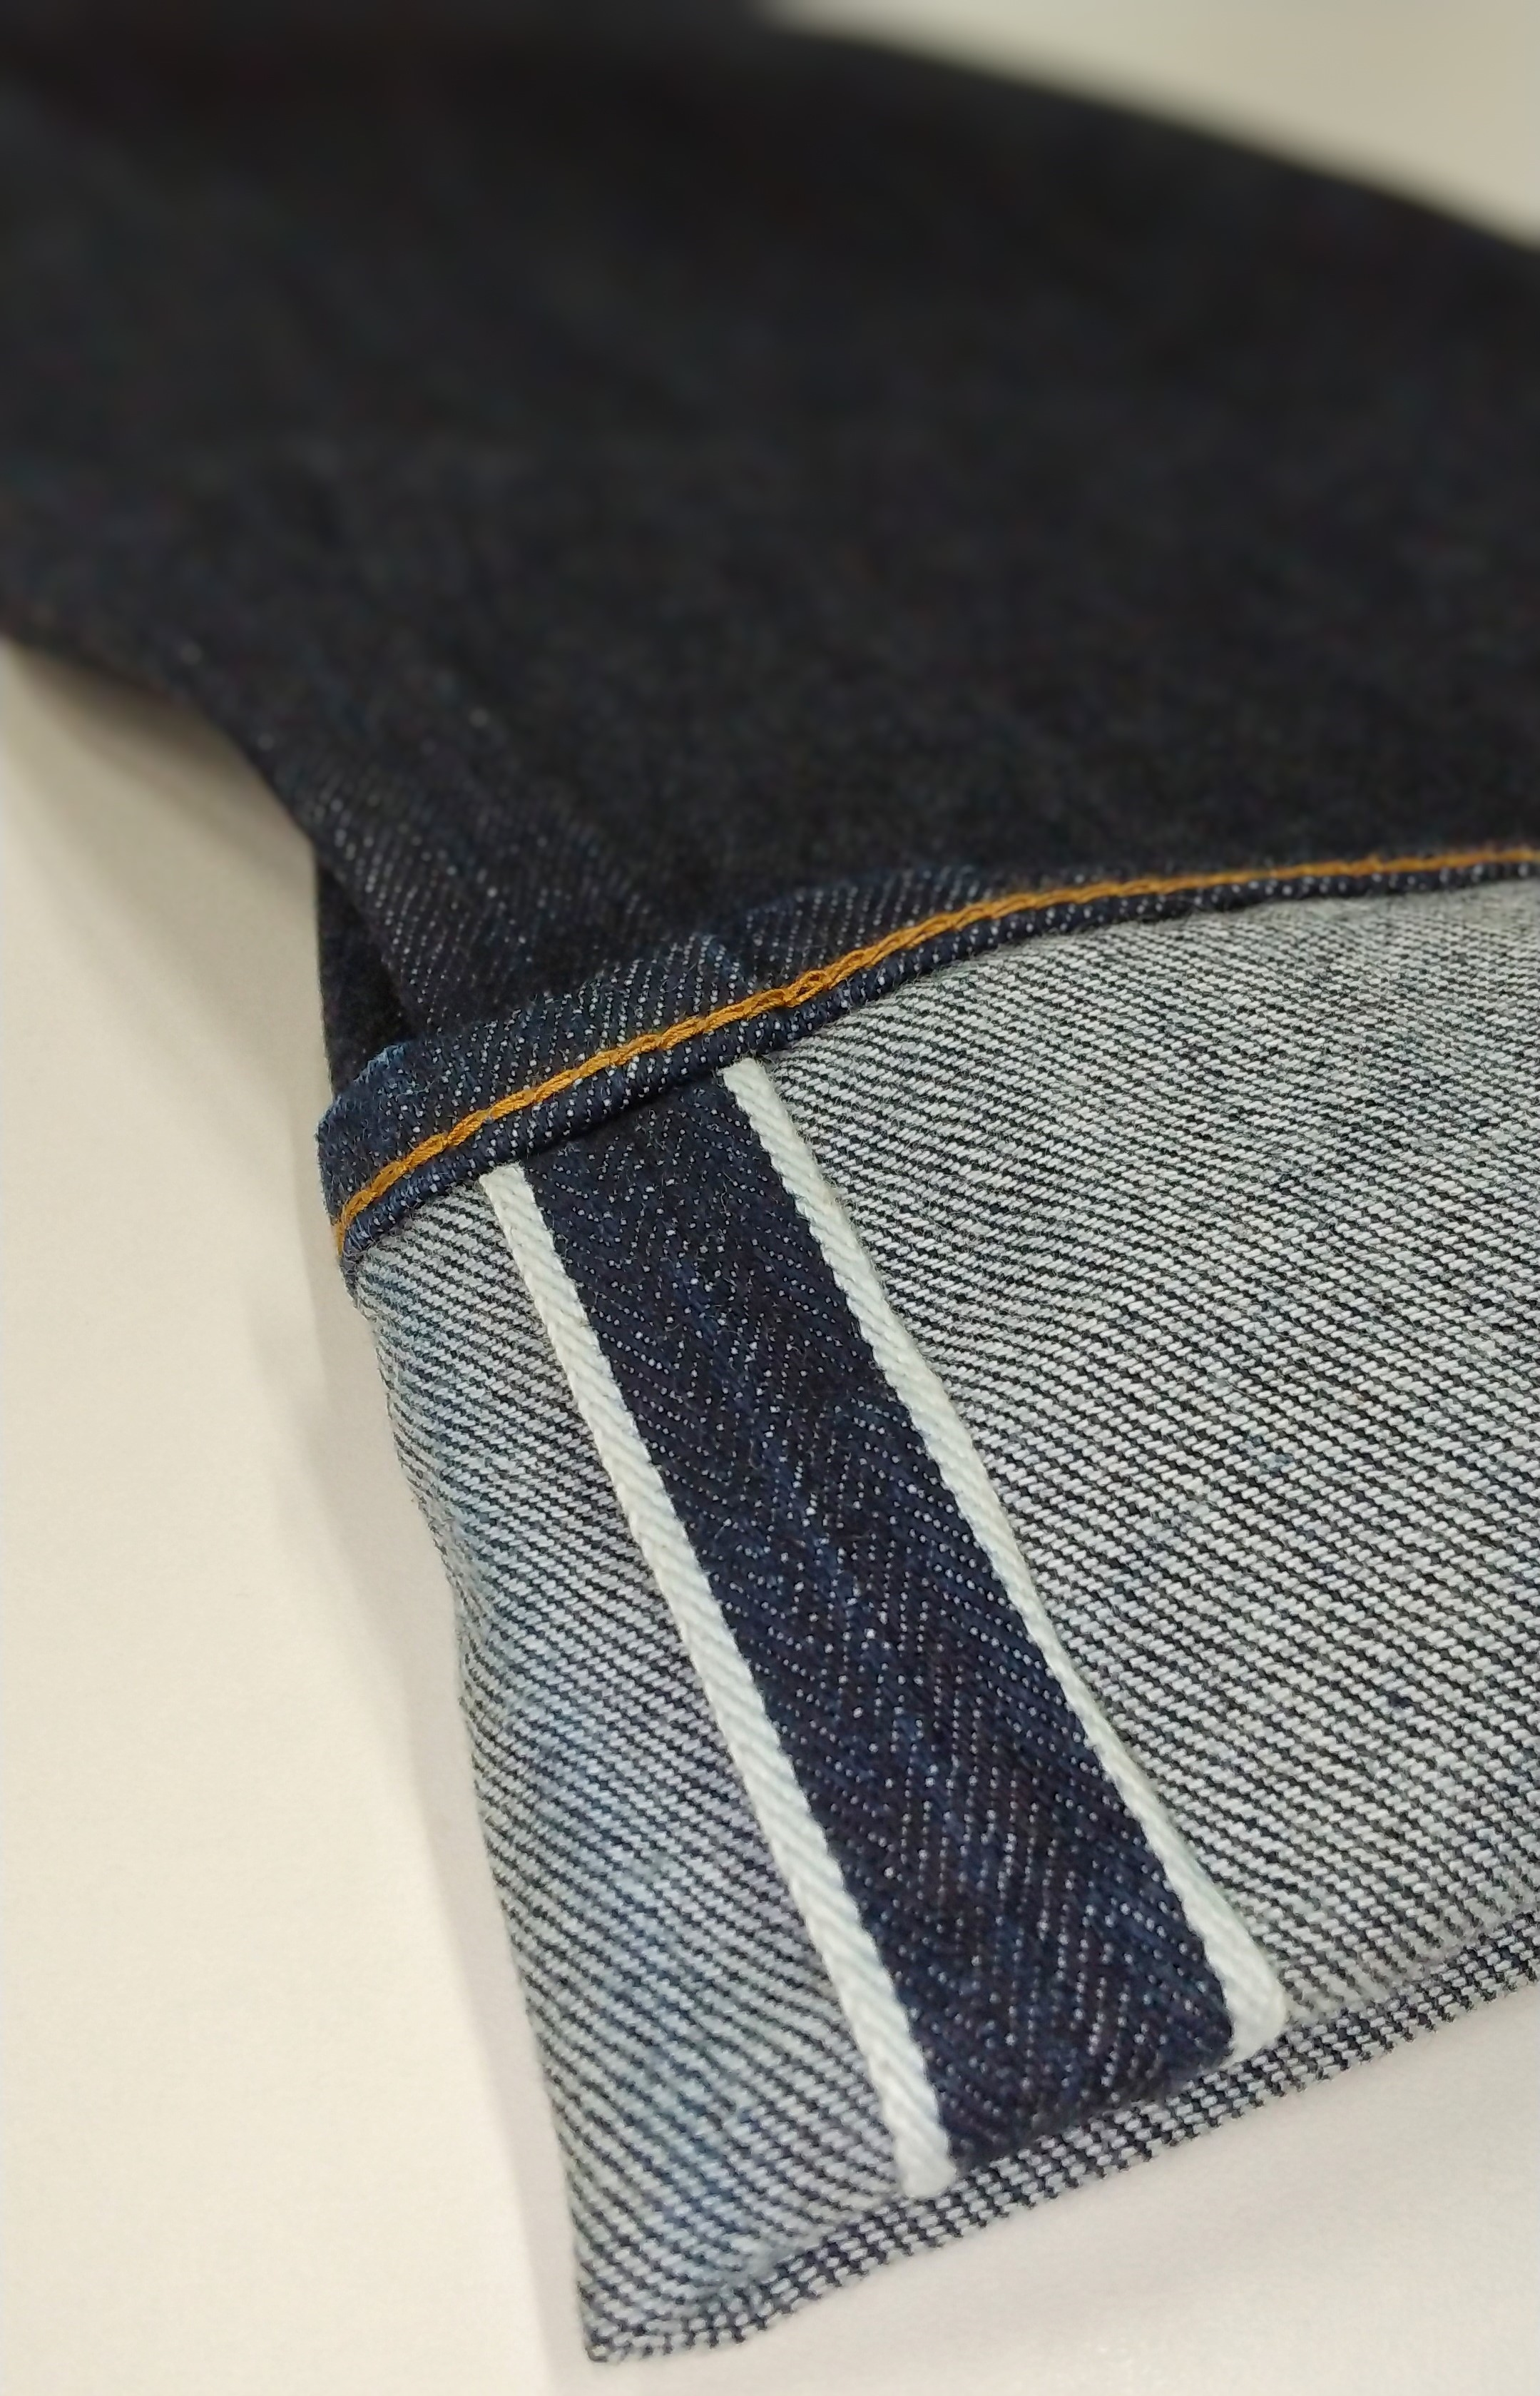 DLP5681 Selvage -L∞PLUS variations-